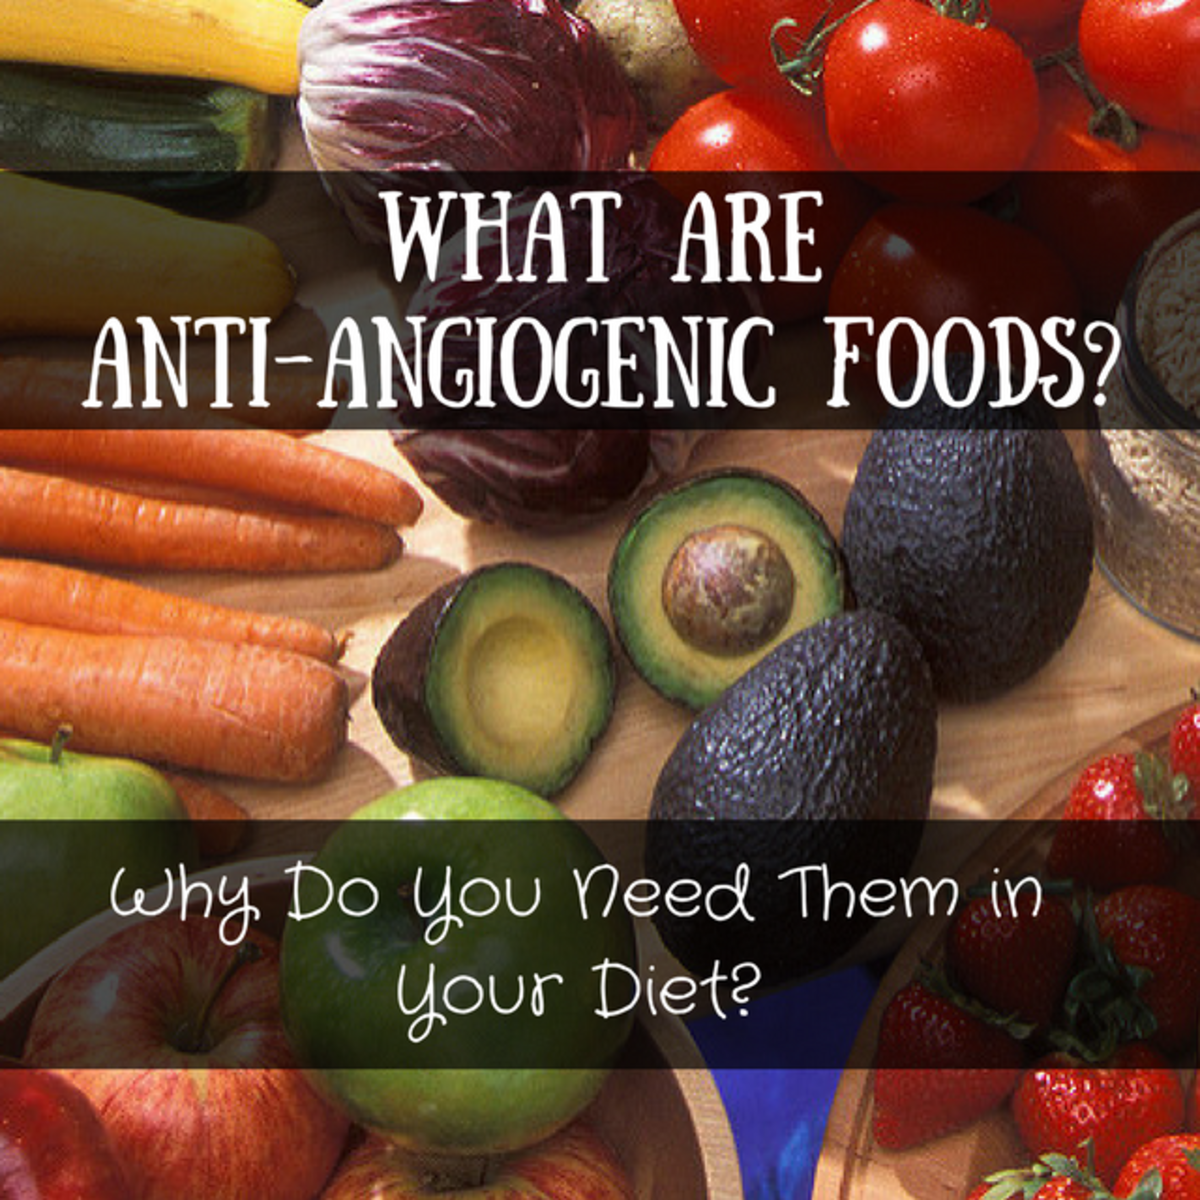 anti-angiogenic-foods-what-they-are-and-why-theyre-crucial-to-include-in-your-diet